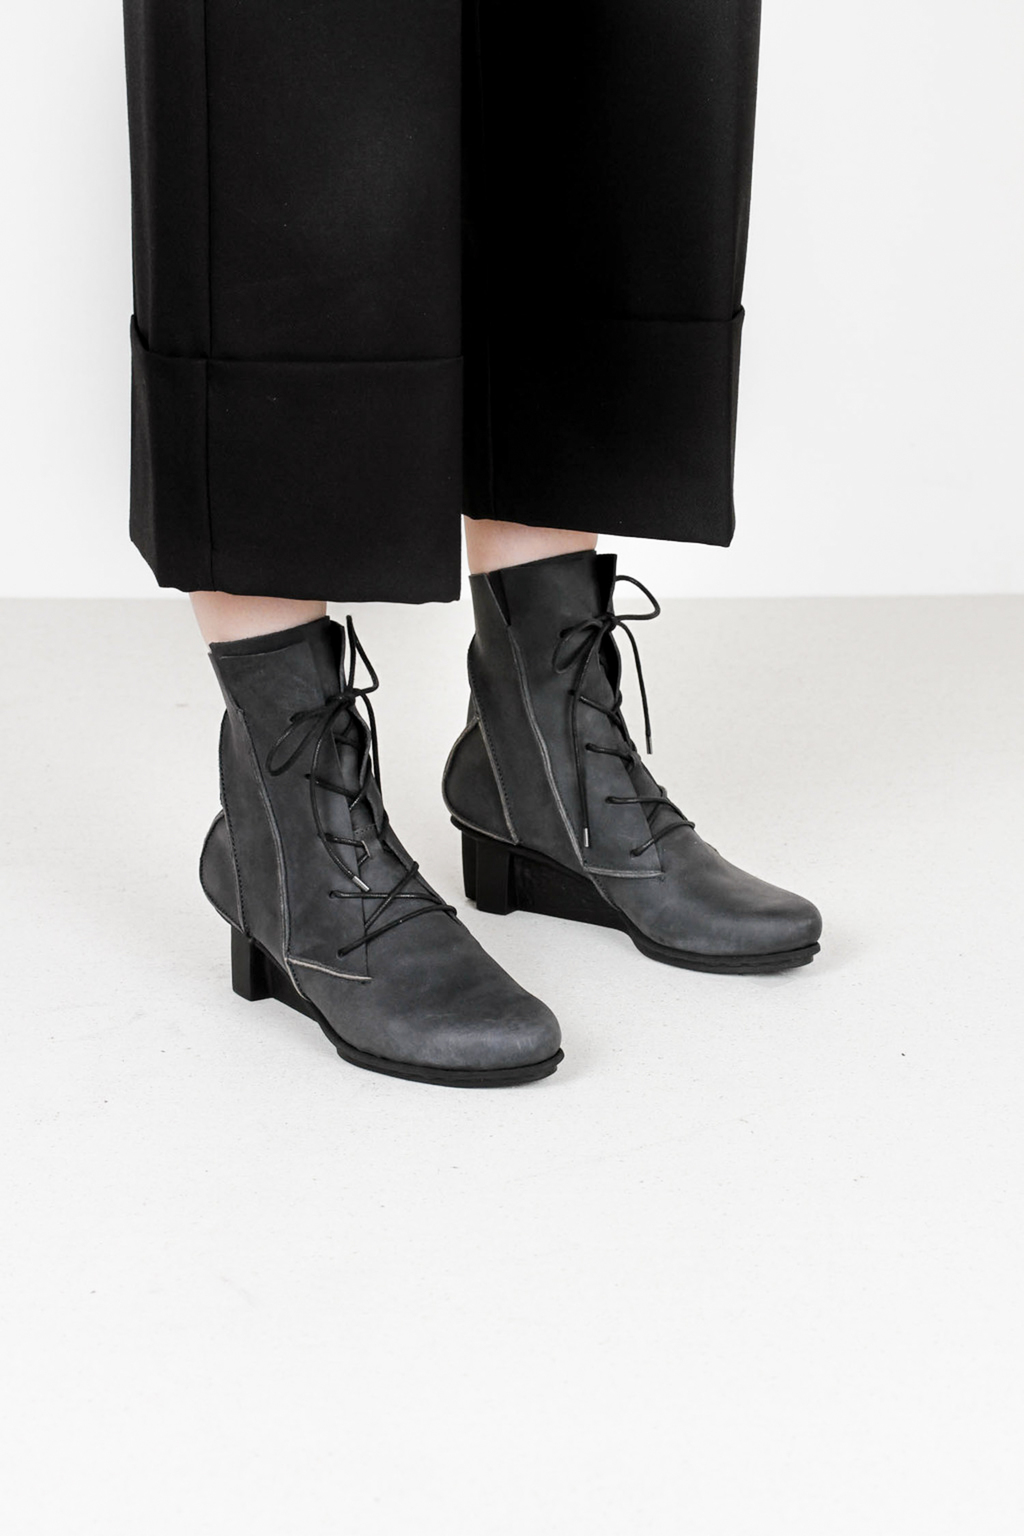 Trippen katla f pul blk leather boots